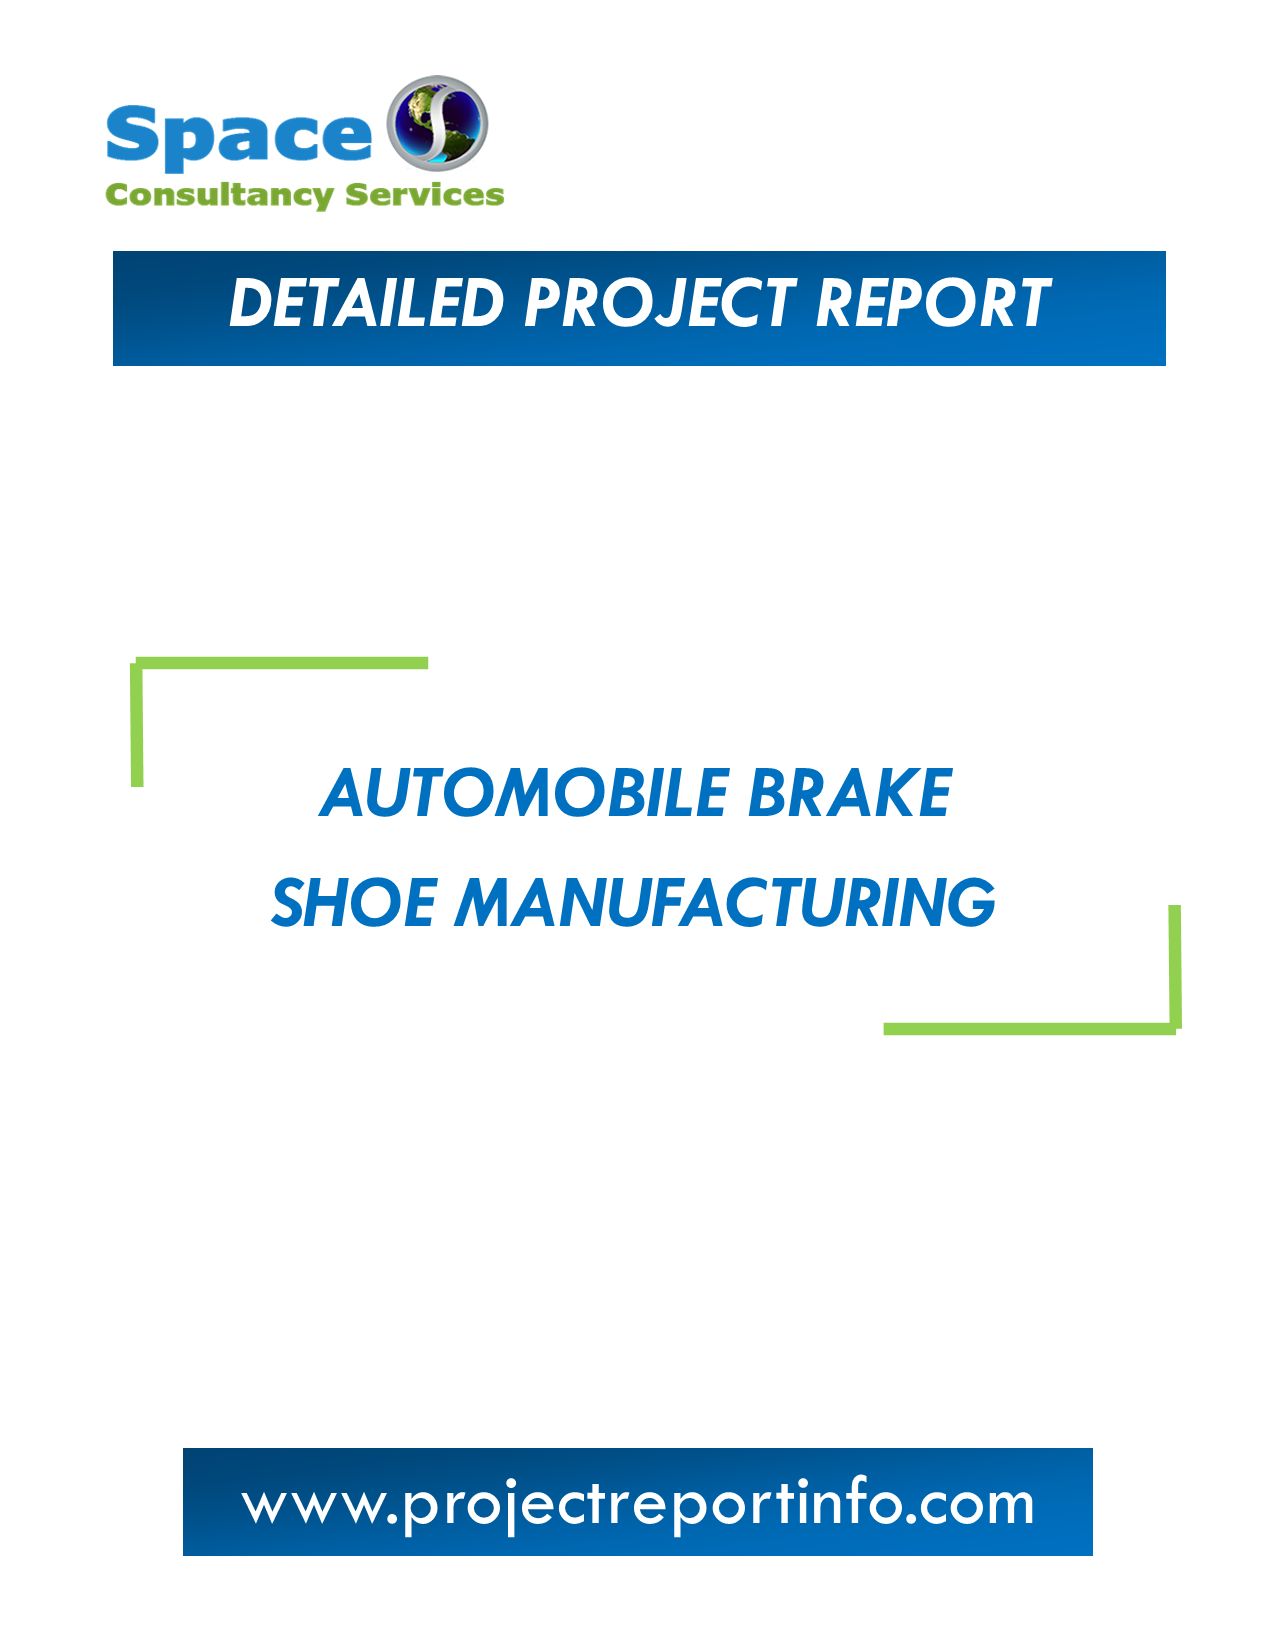 Automobile Brake Shoe Manufacturing Project Report